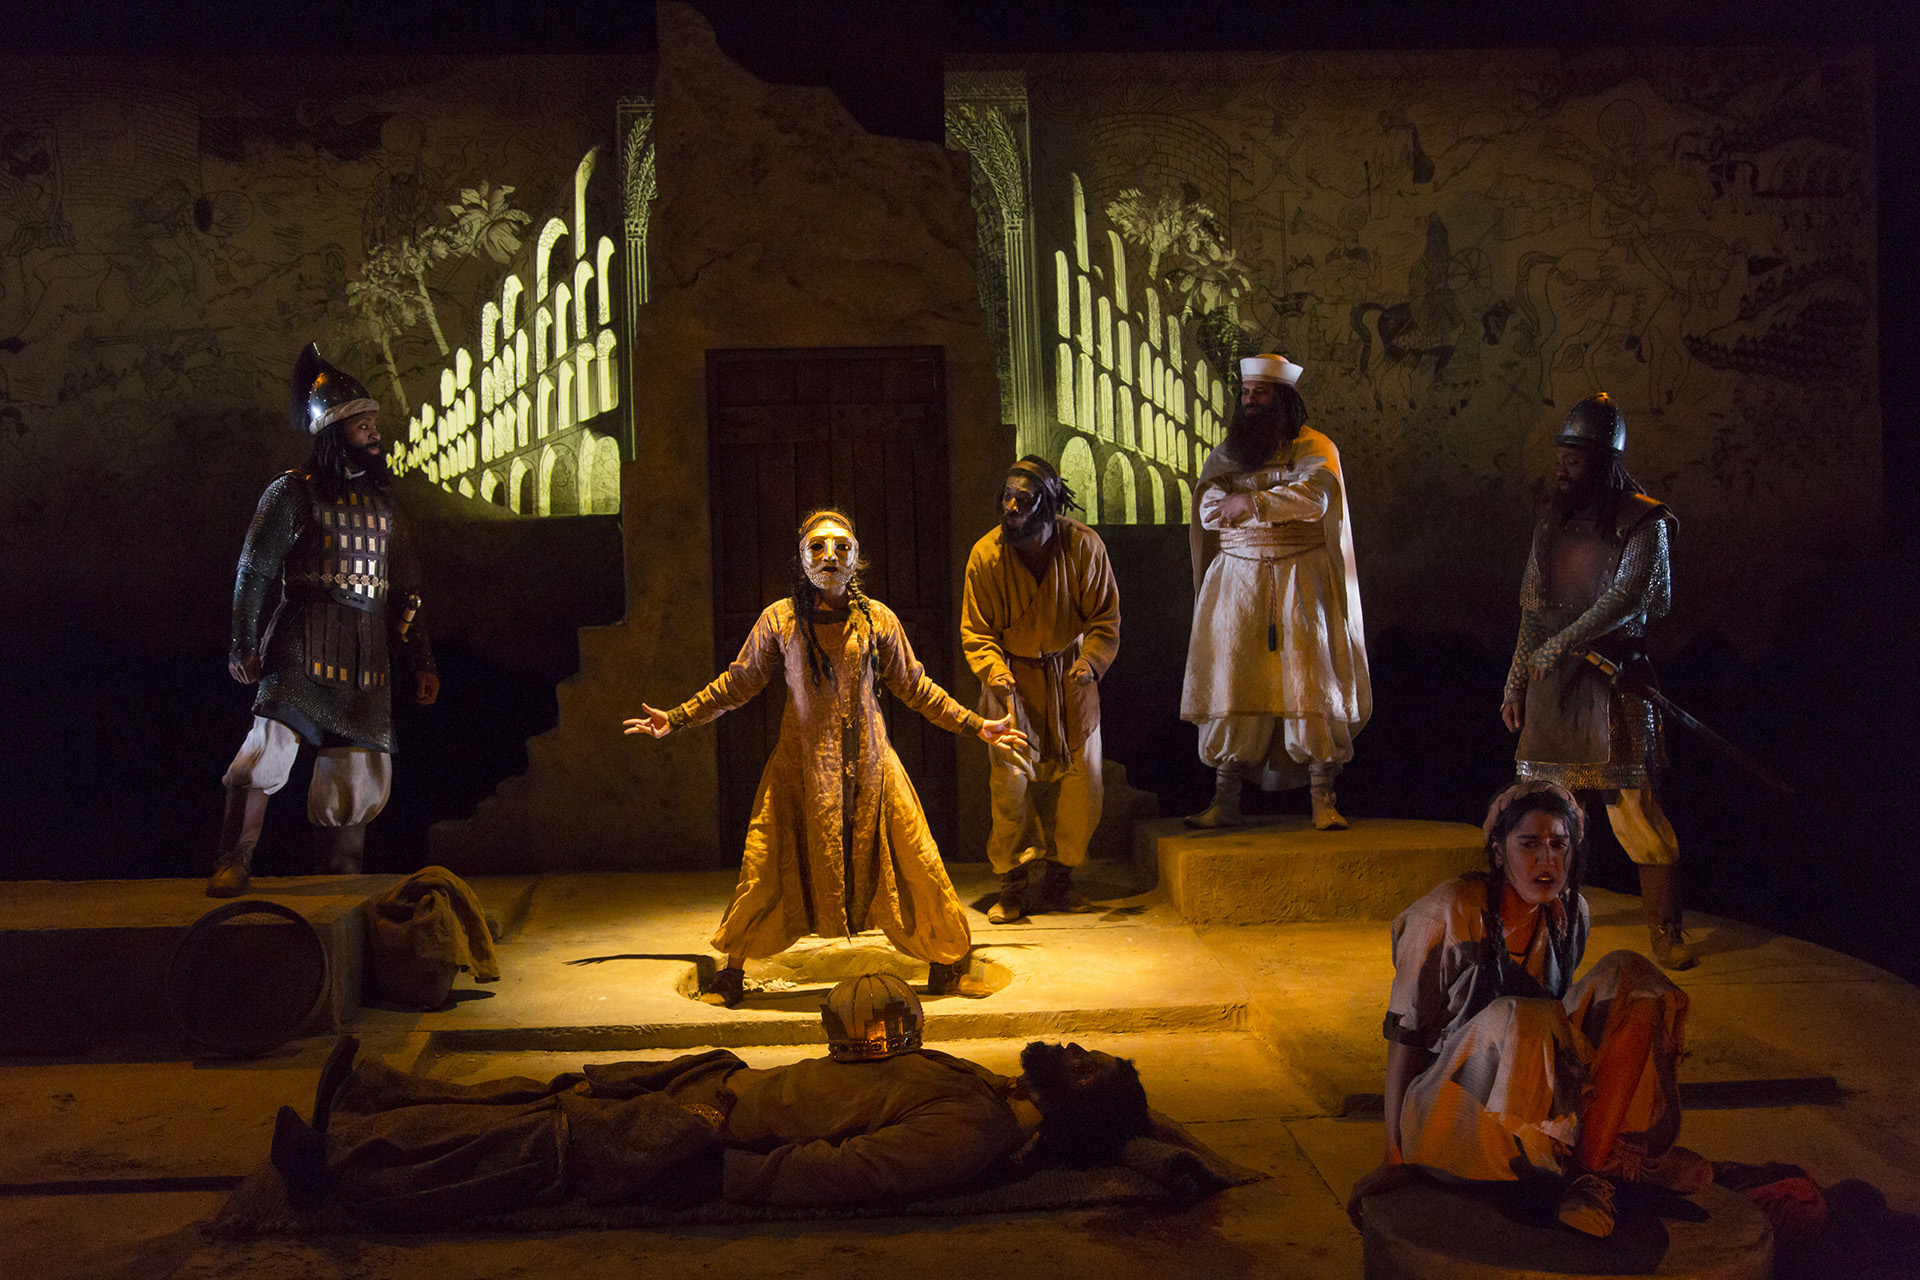 DEATH OF YAZDGERD by Bahram Beyzai, translated by Manuchehr Anvar, directed by Shadi Ghaheri ('18), scenic design by John Bondi-Ernoehazy ('19), costume design by Mika H. Eubanks ('19), lighting design by Samuel Kwan Chi Chan ('19), projection design by Yaara Bar ('19), Yale School of Drama, 2017. Photo by T. Charles Erickson.